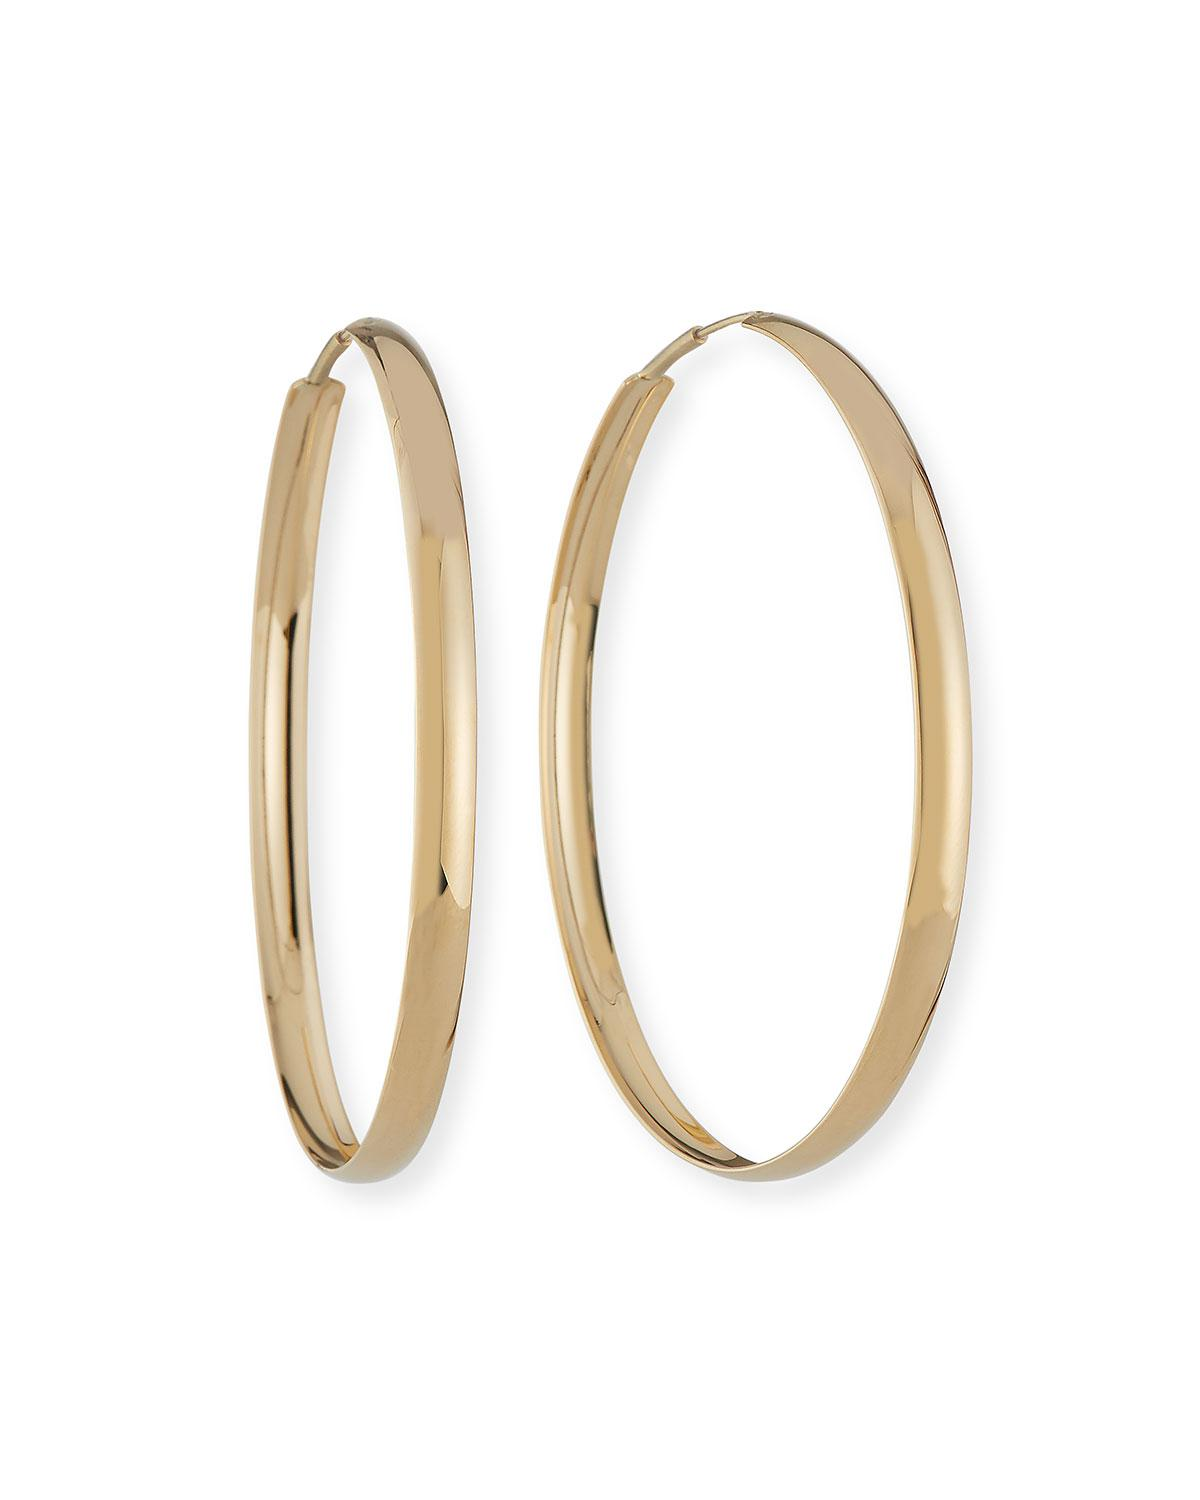 Lana Jewelry 14k Curve Magic Hoop Earrings iyGT7eoh